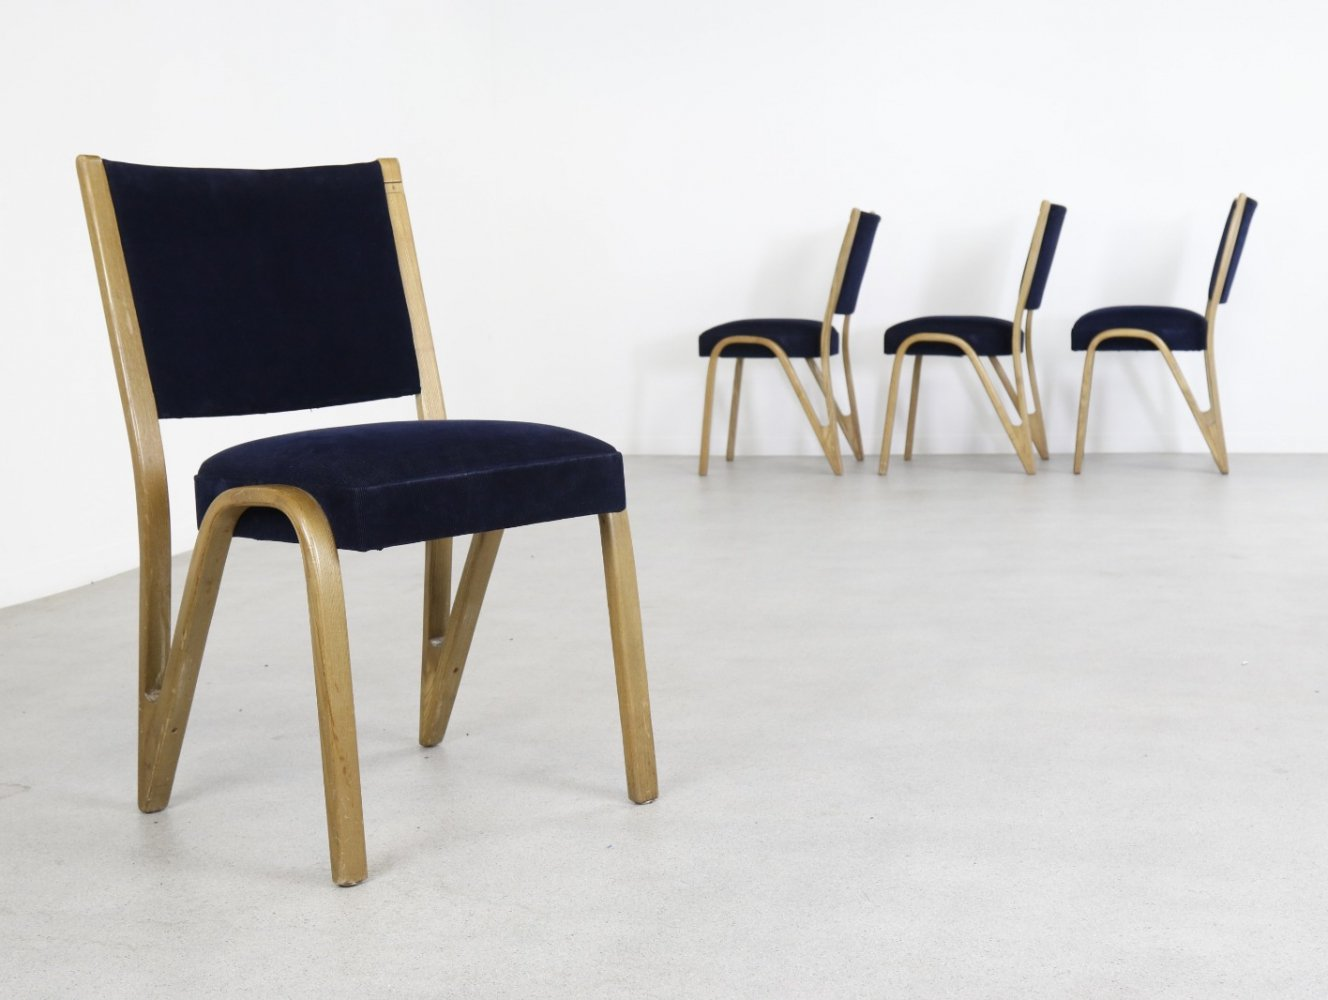 Set of 4 Bow-wood dining chairs by Hugues Steiner for Steiner, 1950s